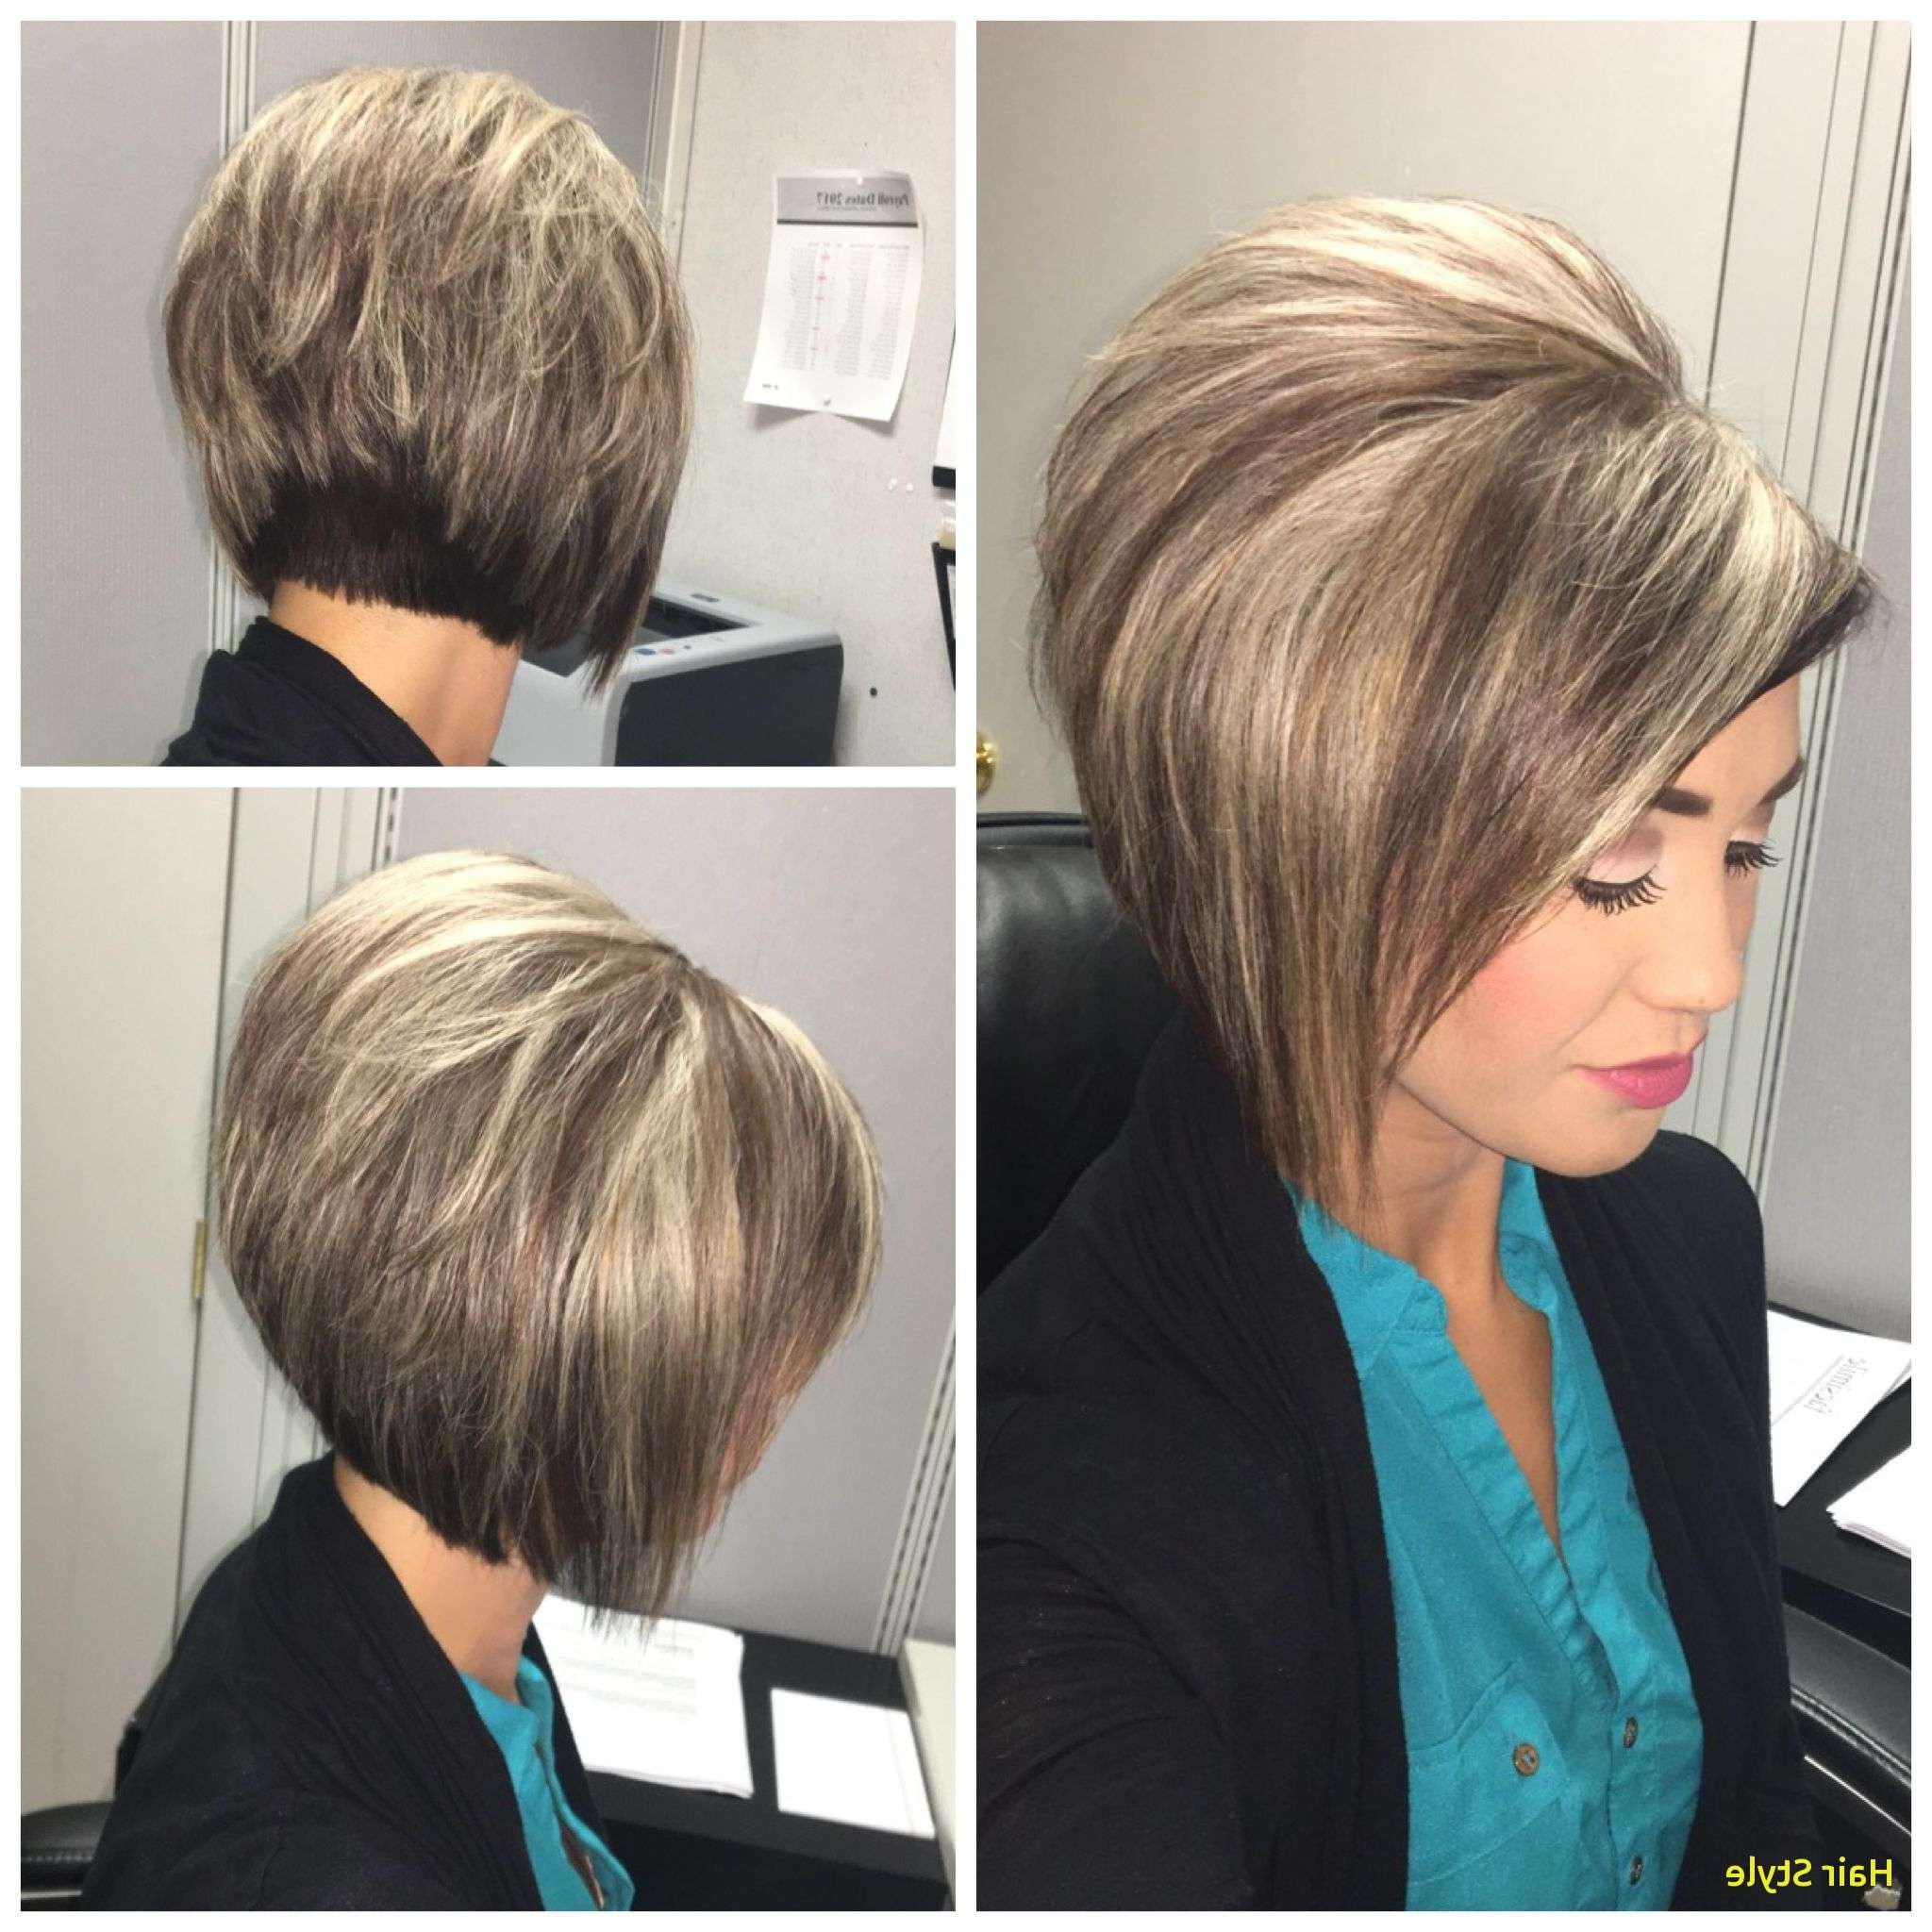 Awesome Angled Bob Hairstyles Lovely Stacked Bob Haircut With Blonde With Regard To Fashionable Stacked White Blonde Bob Hairstyles (Gallery 10 of 20)